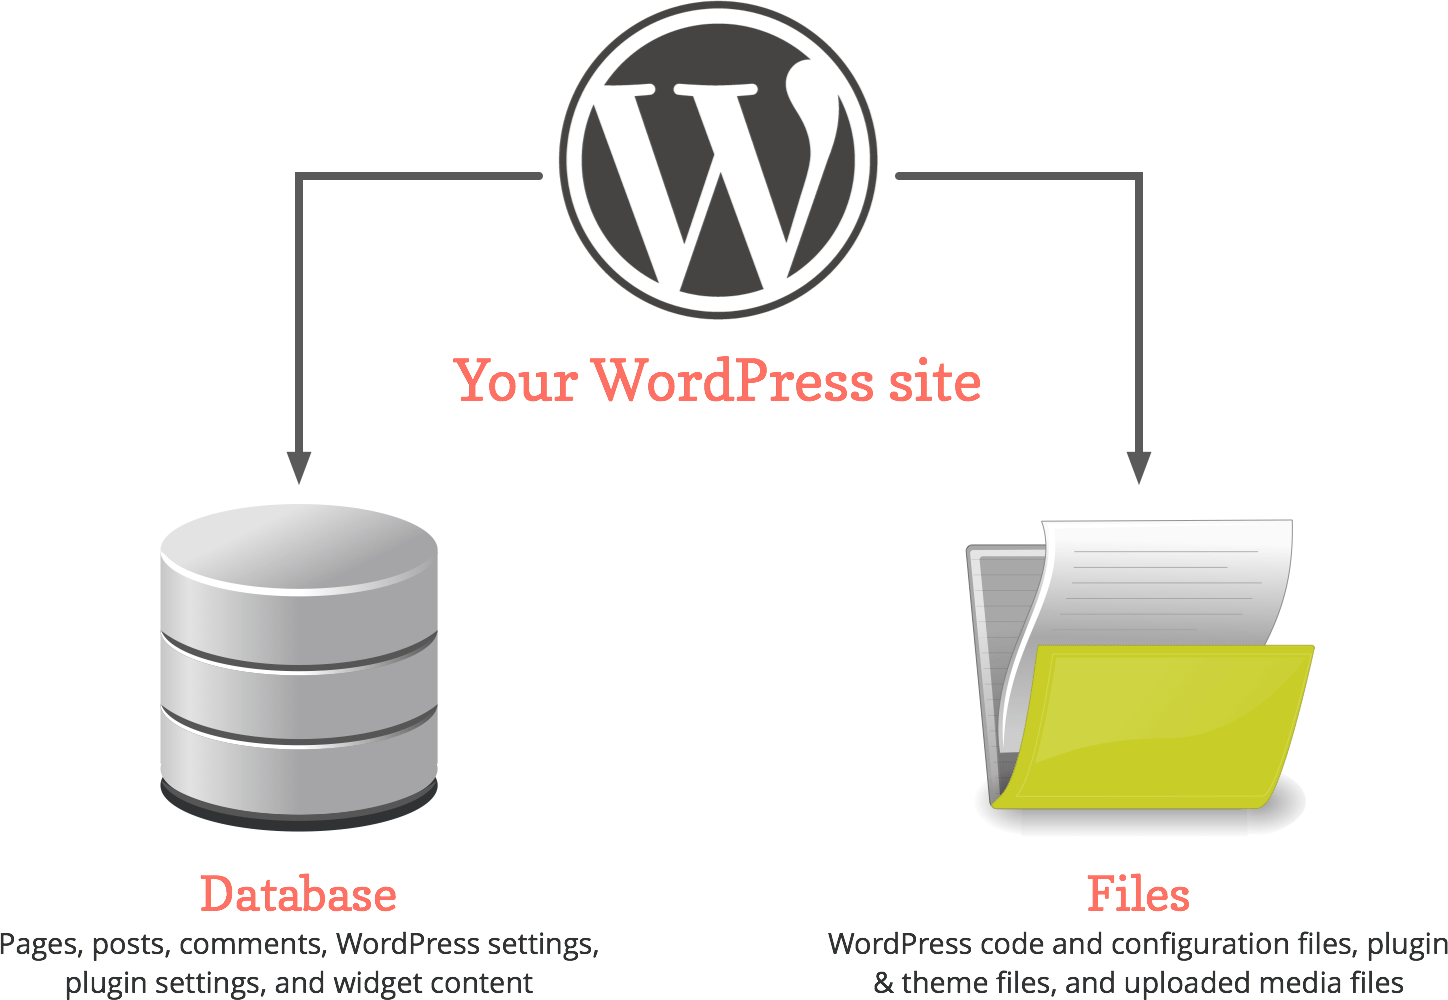 WordPress database and files